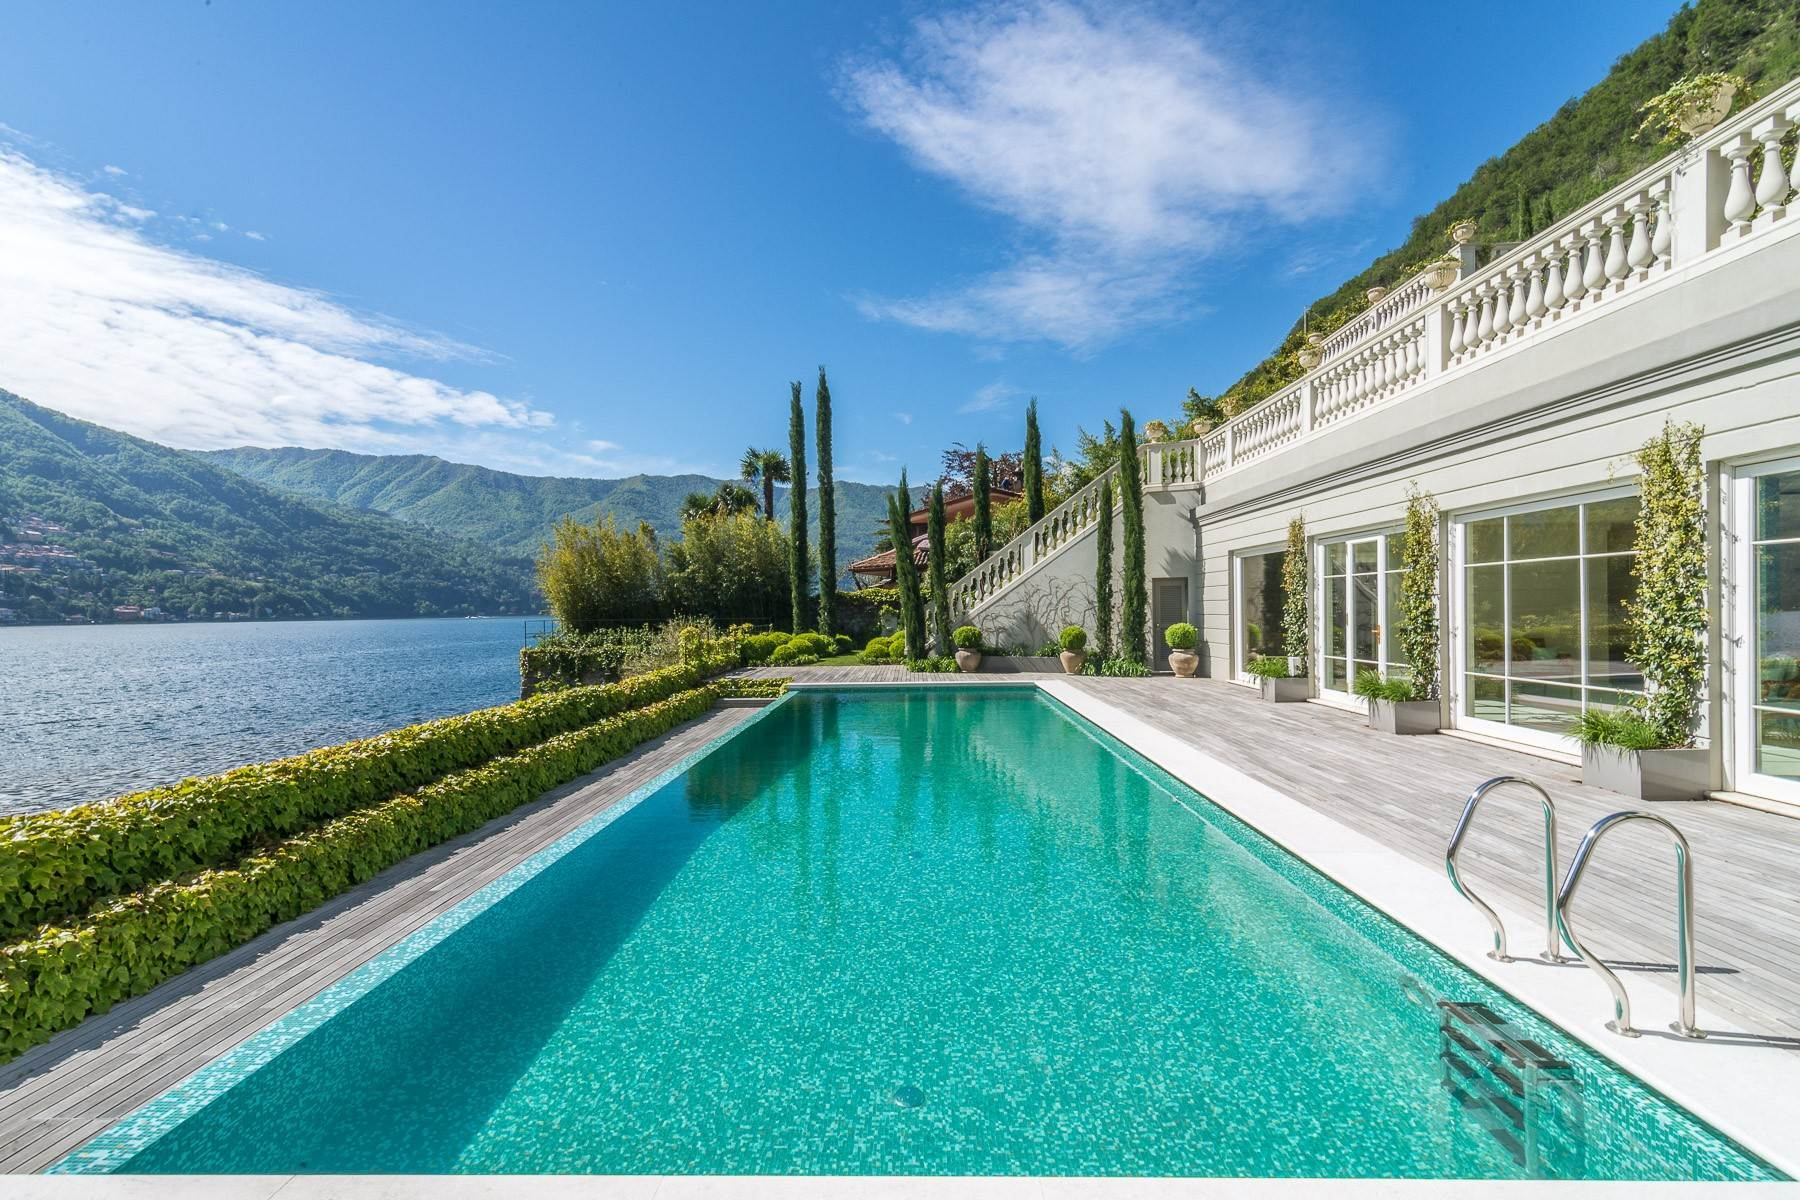 17. Other Residential Homes at Laglio, Como, Italy